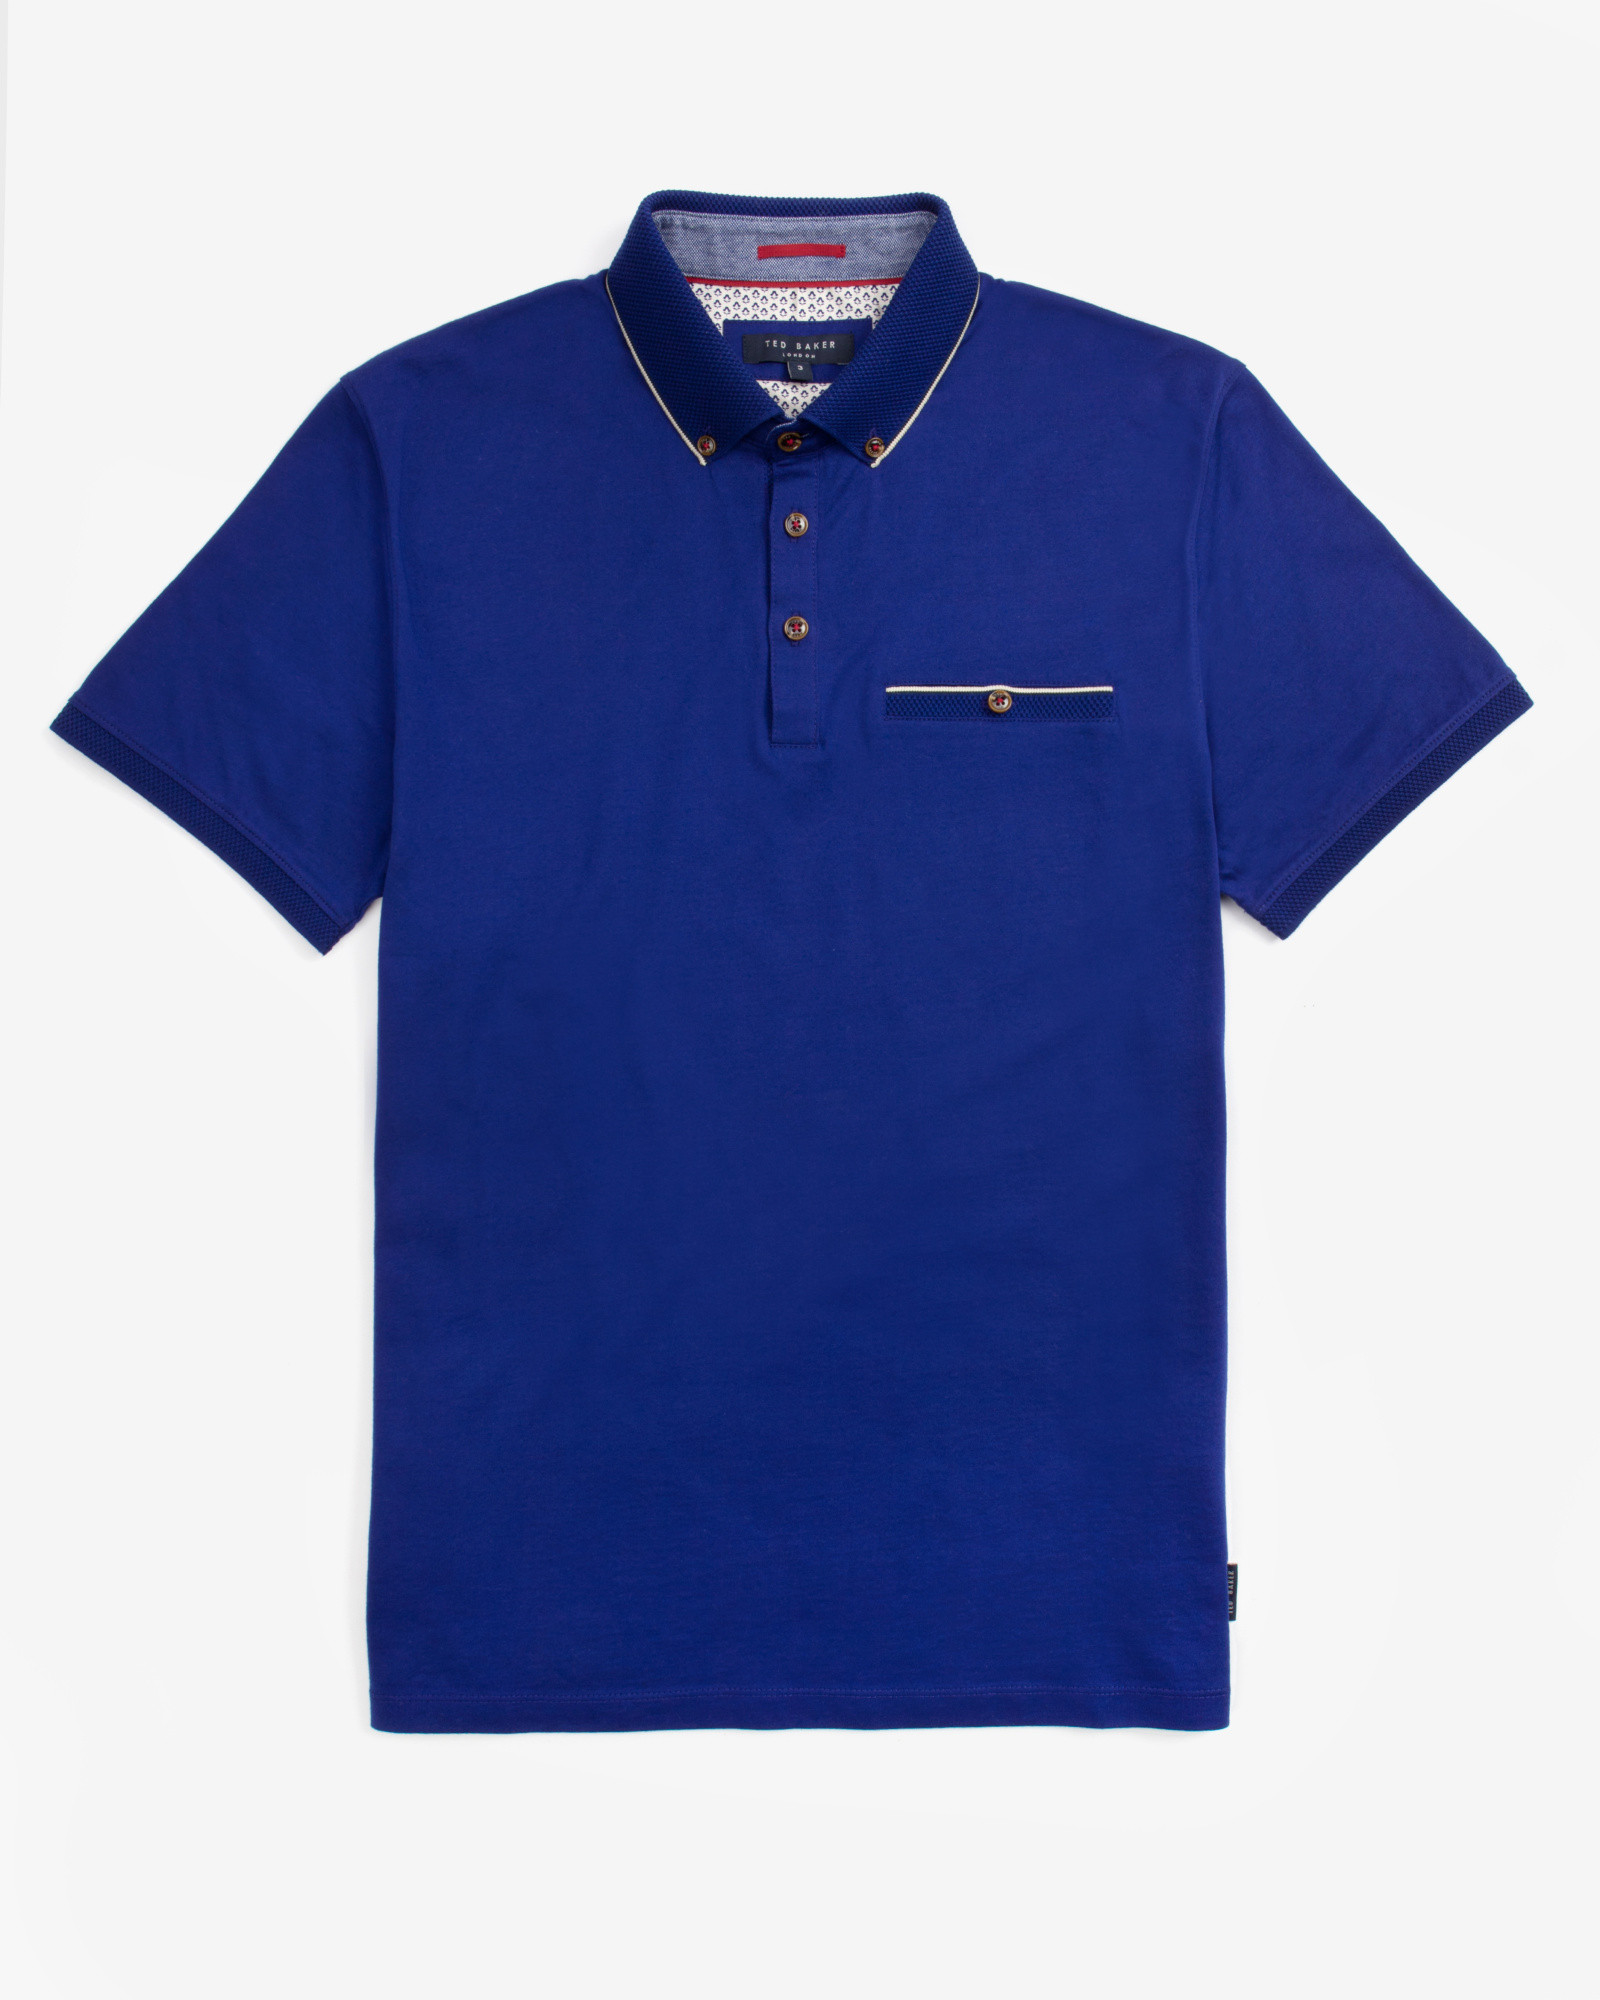 Ted baker knitted collar polo shirt in blue for men lyst for Ted baker blue shirt